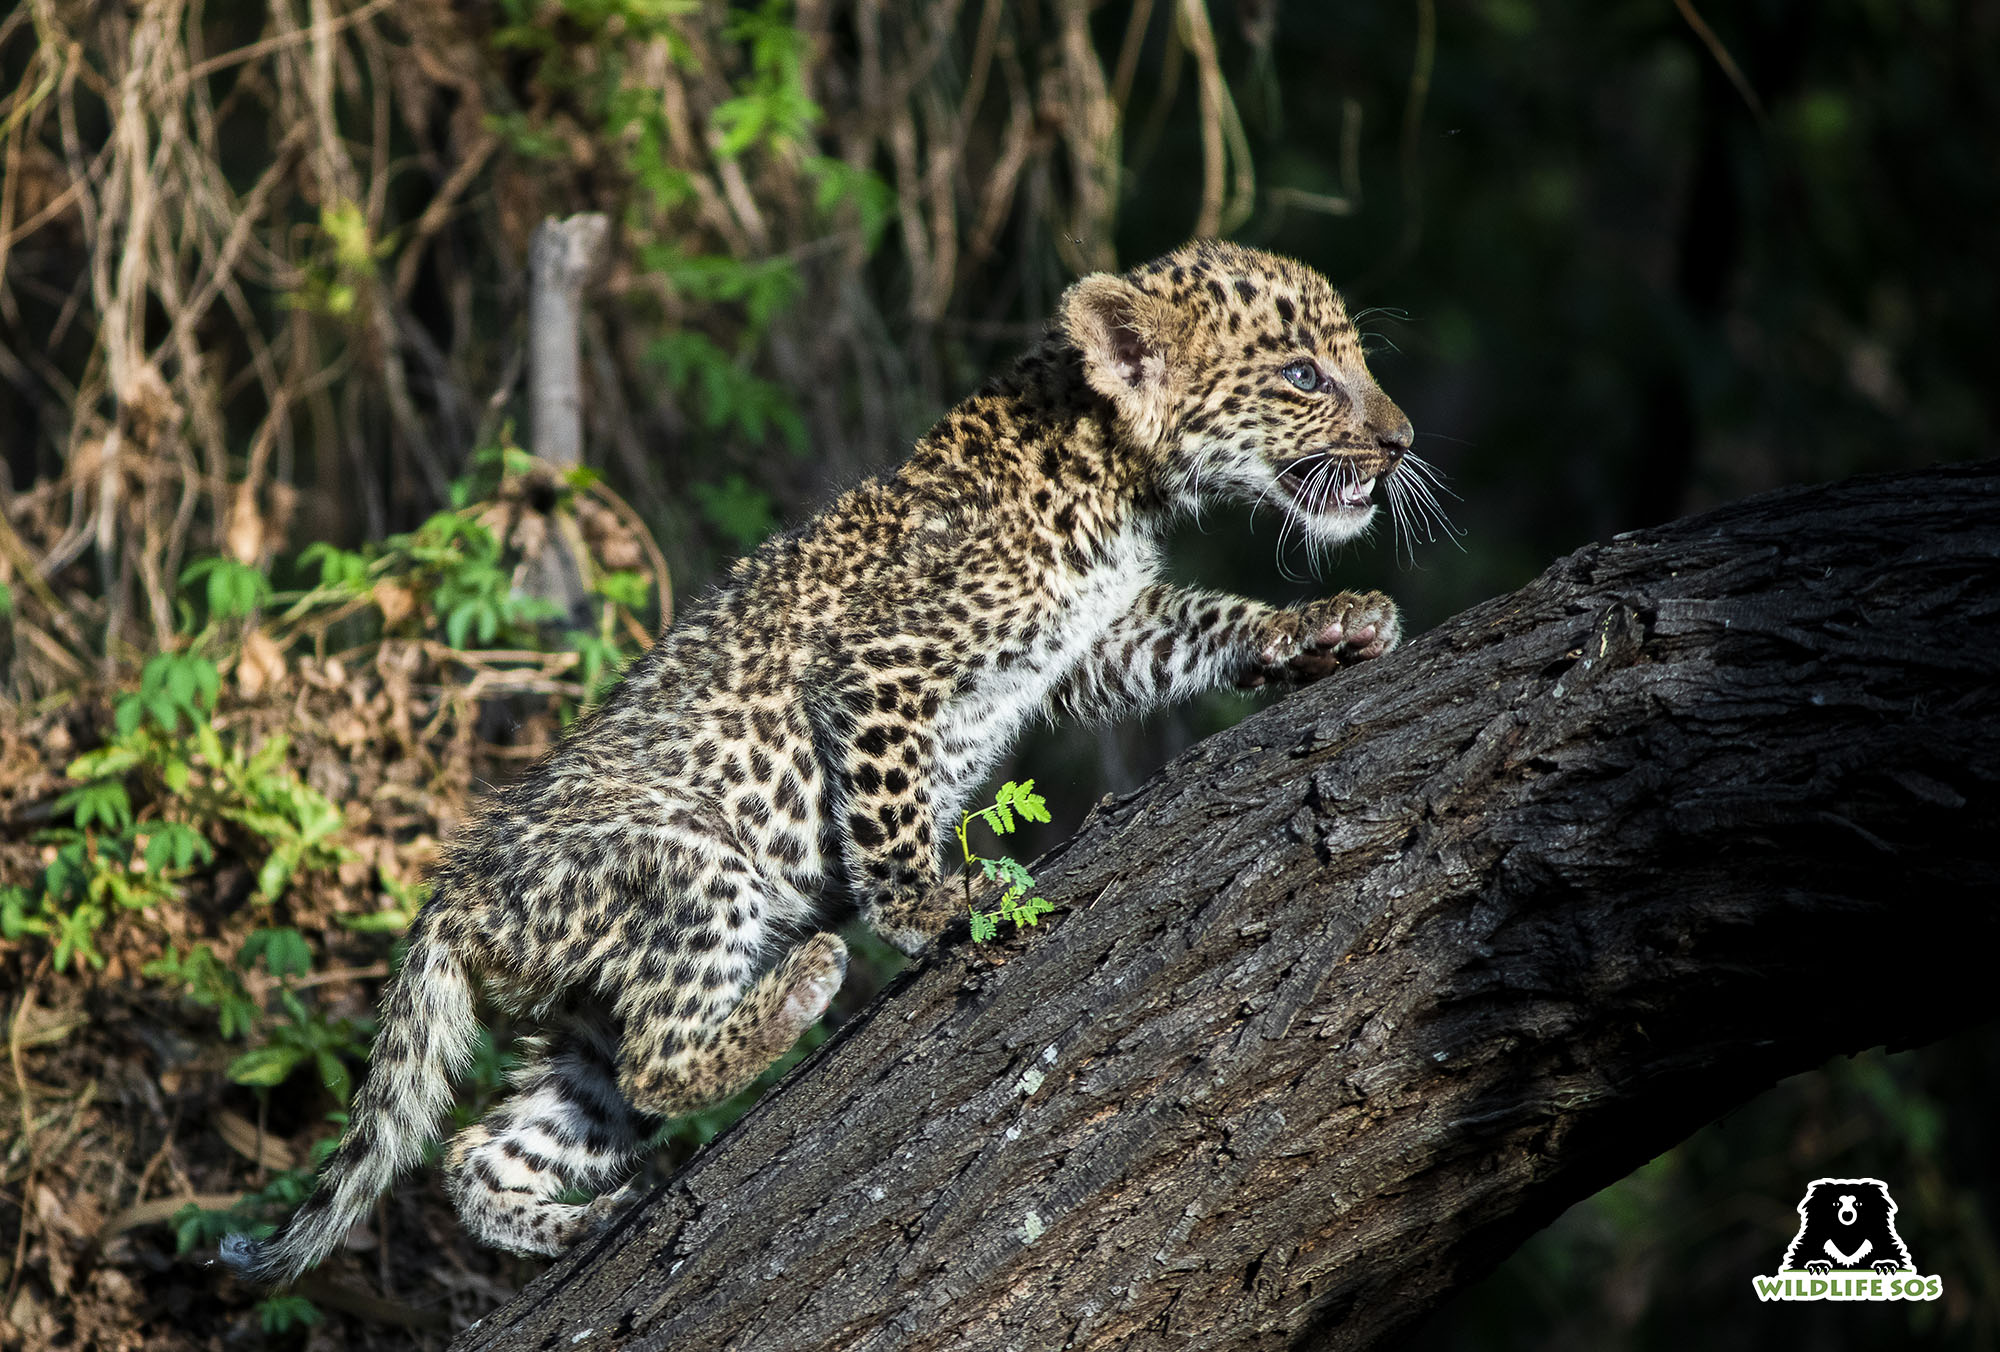 The rescued leopard cubs are provided with a near natural enviroment at the Wildlife SOS Leopard Rescue Centre. Image Courtesy of Wildlife SOS